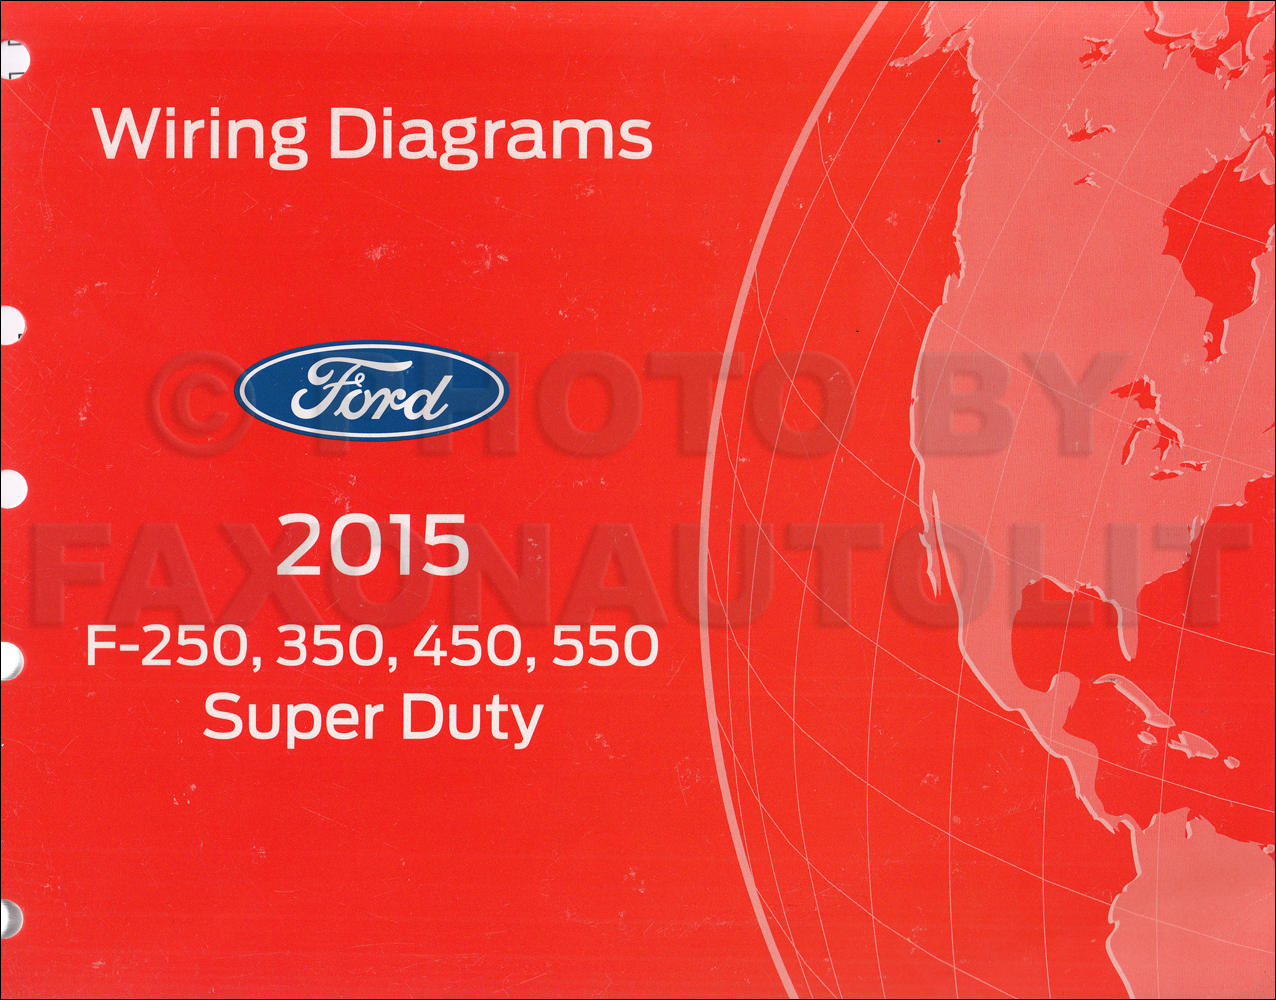 2015 Ford F250-F550 Super DutyTruck Wiring Diagram Manual ...